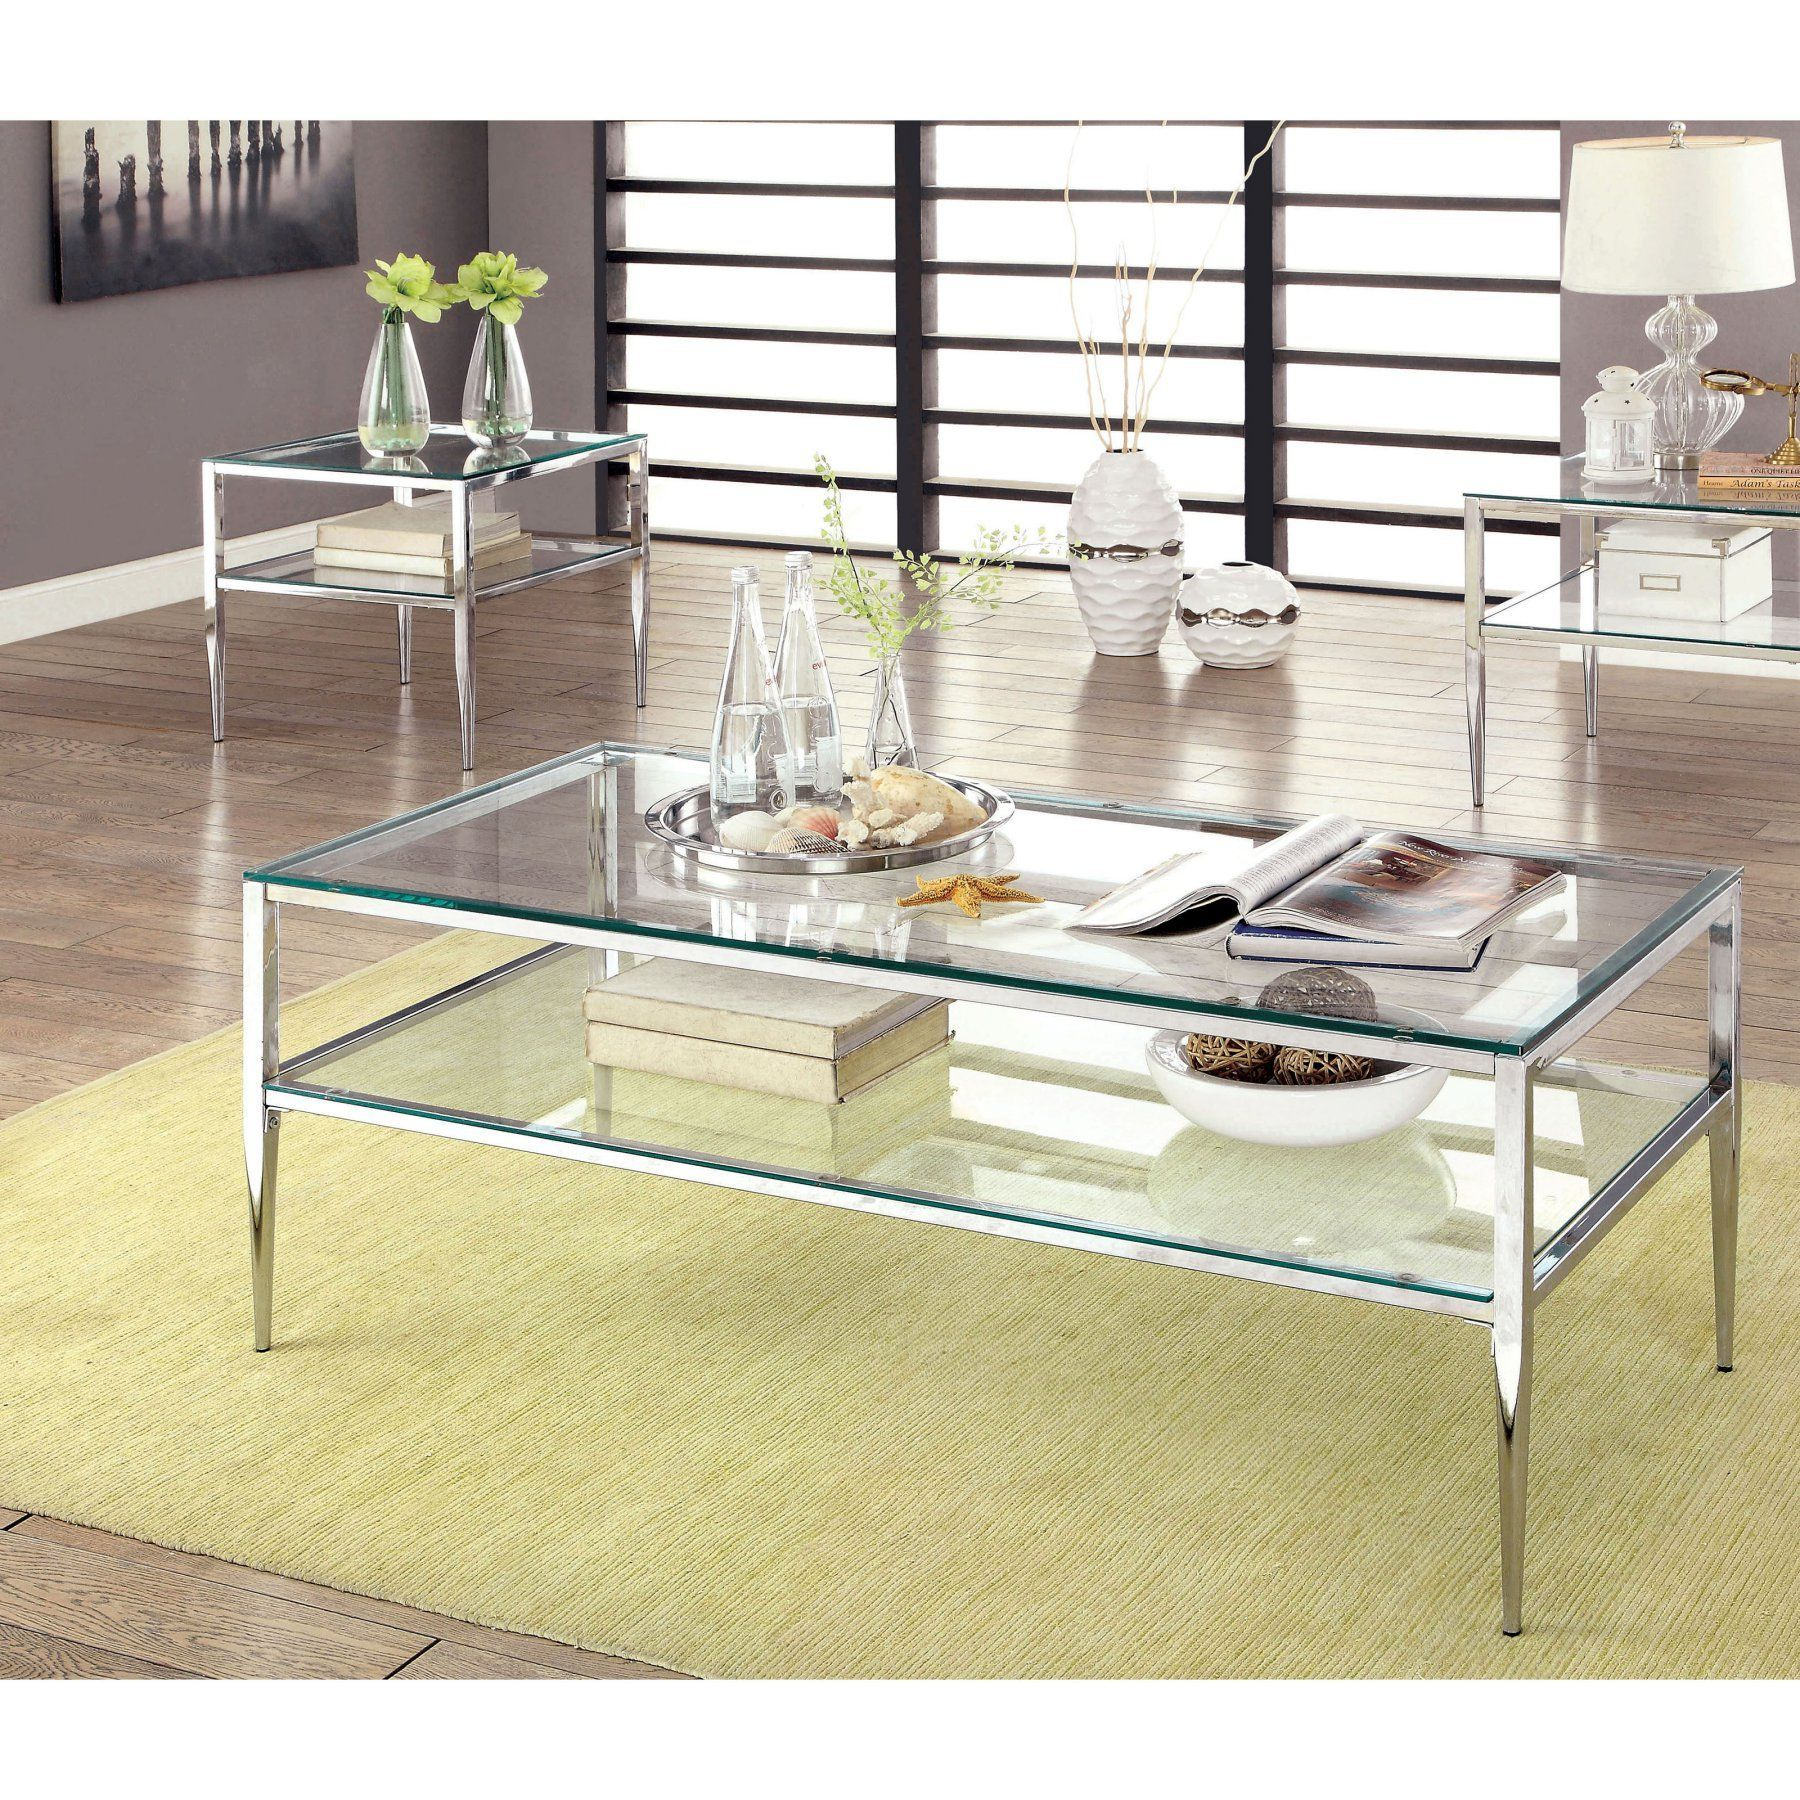 Furniture of america tyra stiletto legged 2 piece coffee table set furniture of america tyra stiletto legged 2 piece coffee table set idf 4162crm geotapseo Choice Image